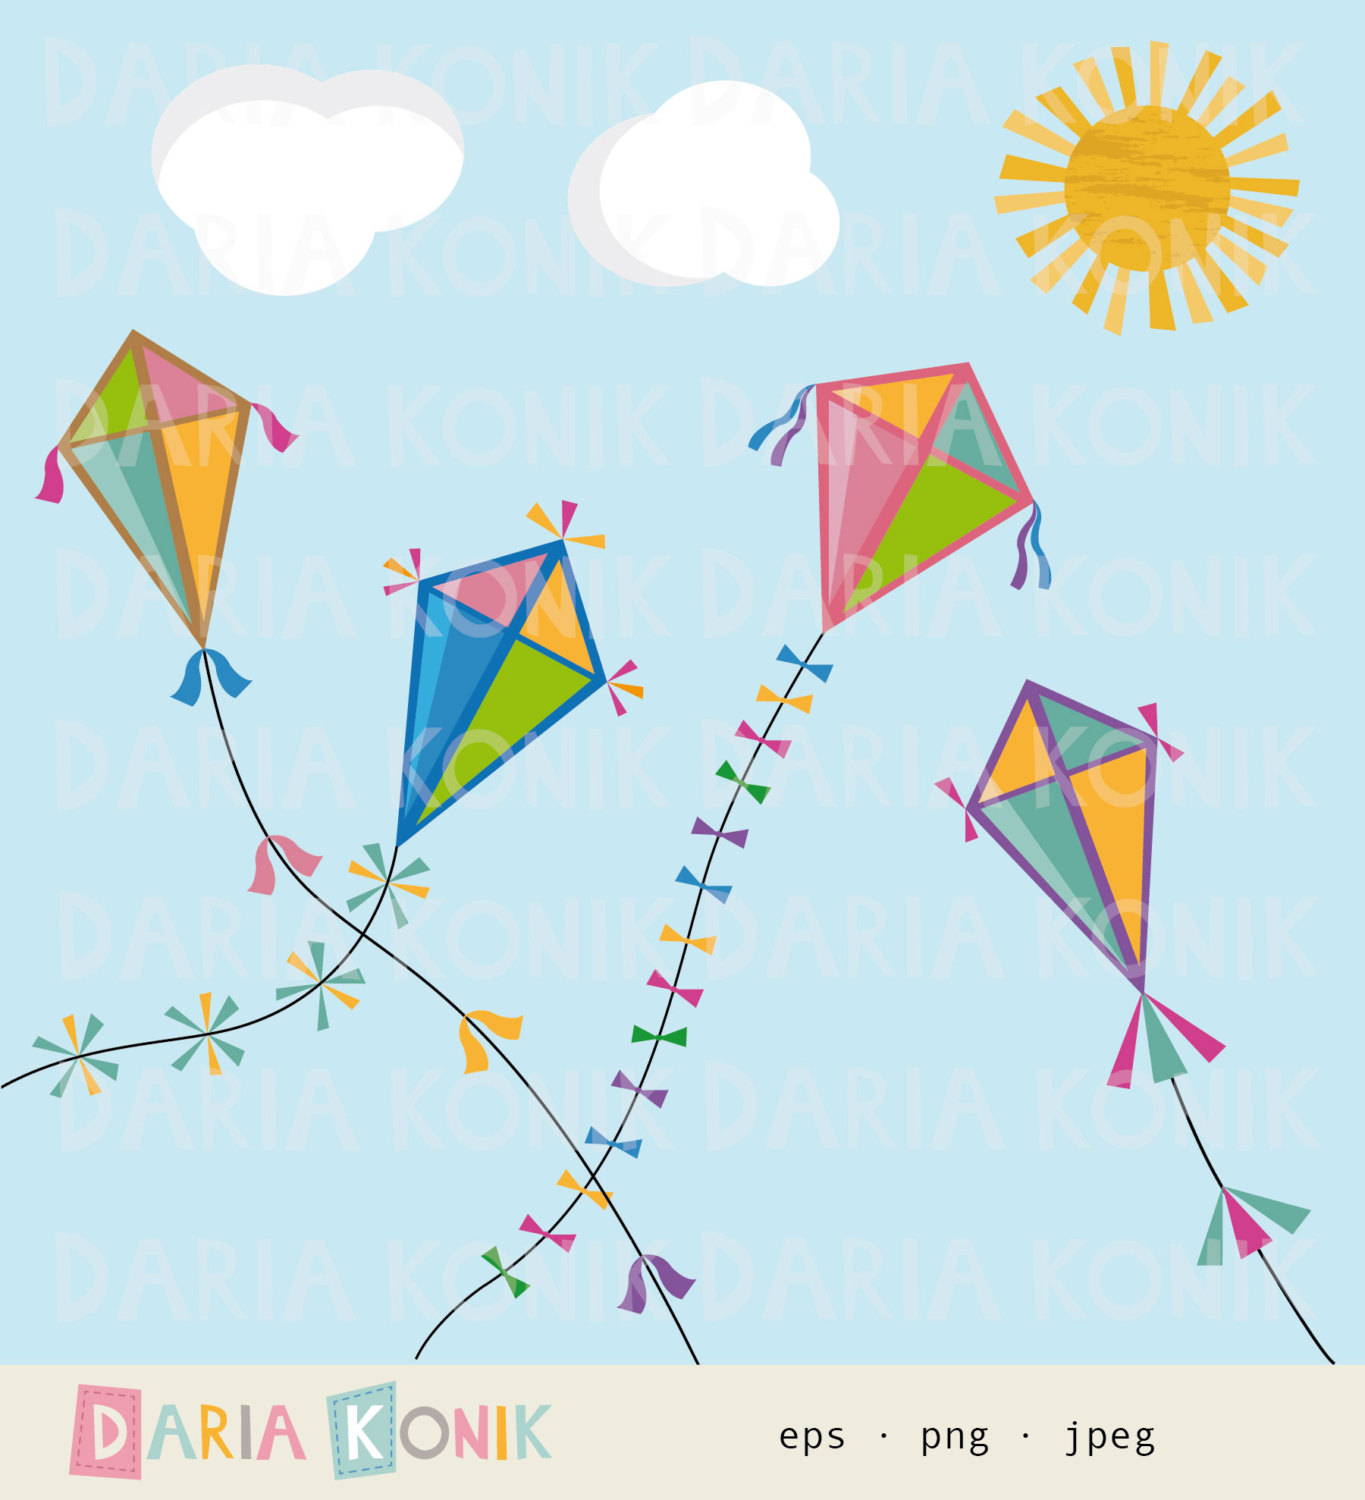 Autumn Kites Clip Art Set-autumn clipart-Autumn Kites Clip Art Set-autumn clipart, fall clipart, kite clipart,  colorful kites, clouds, sun, eps, png, jpeg, instant download-17